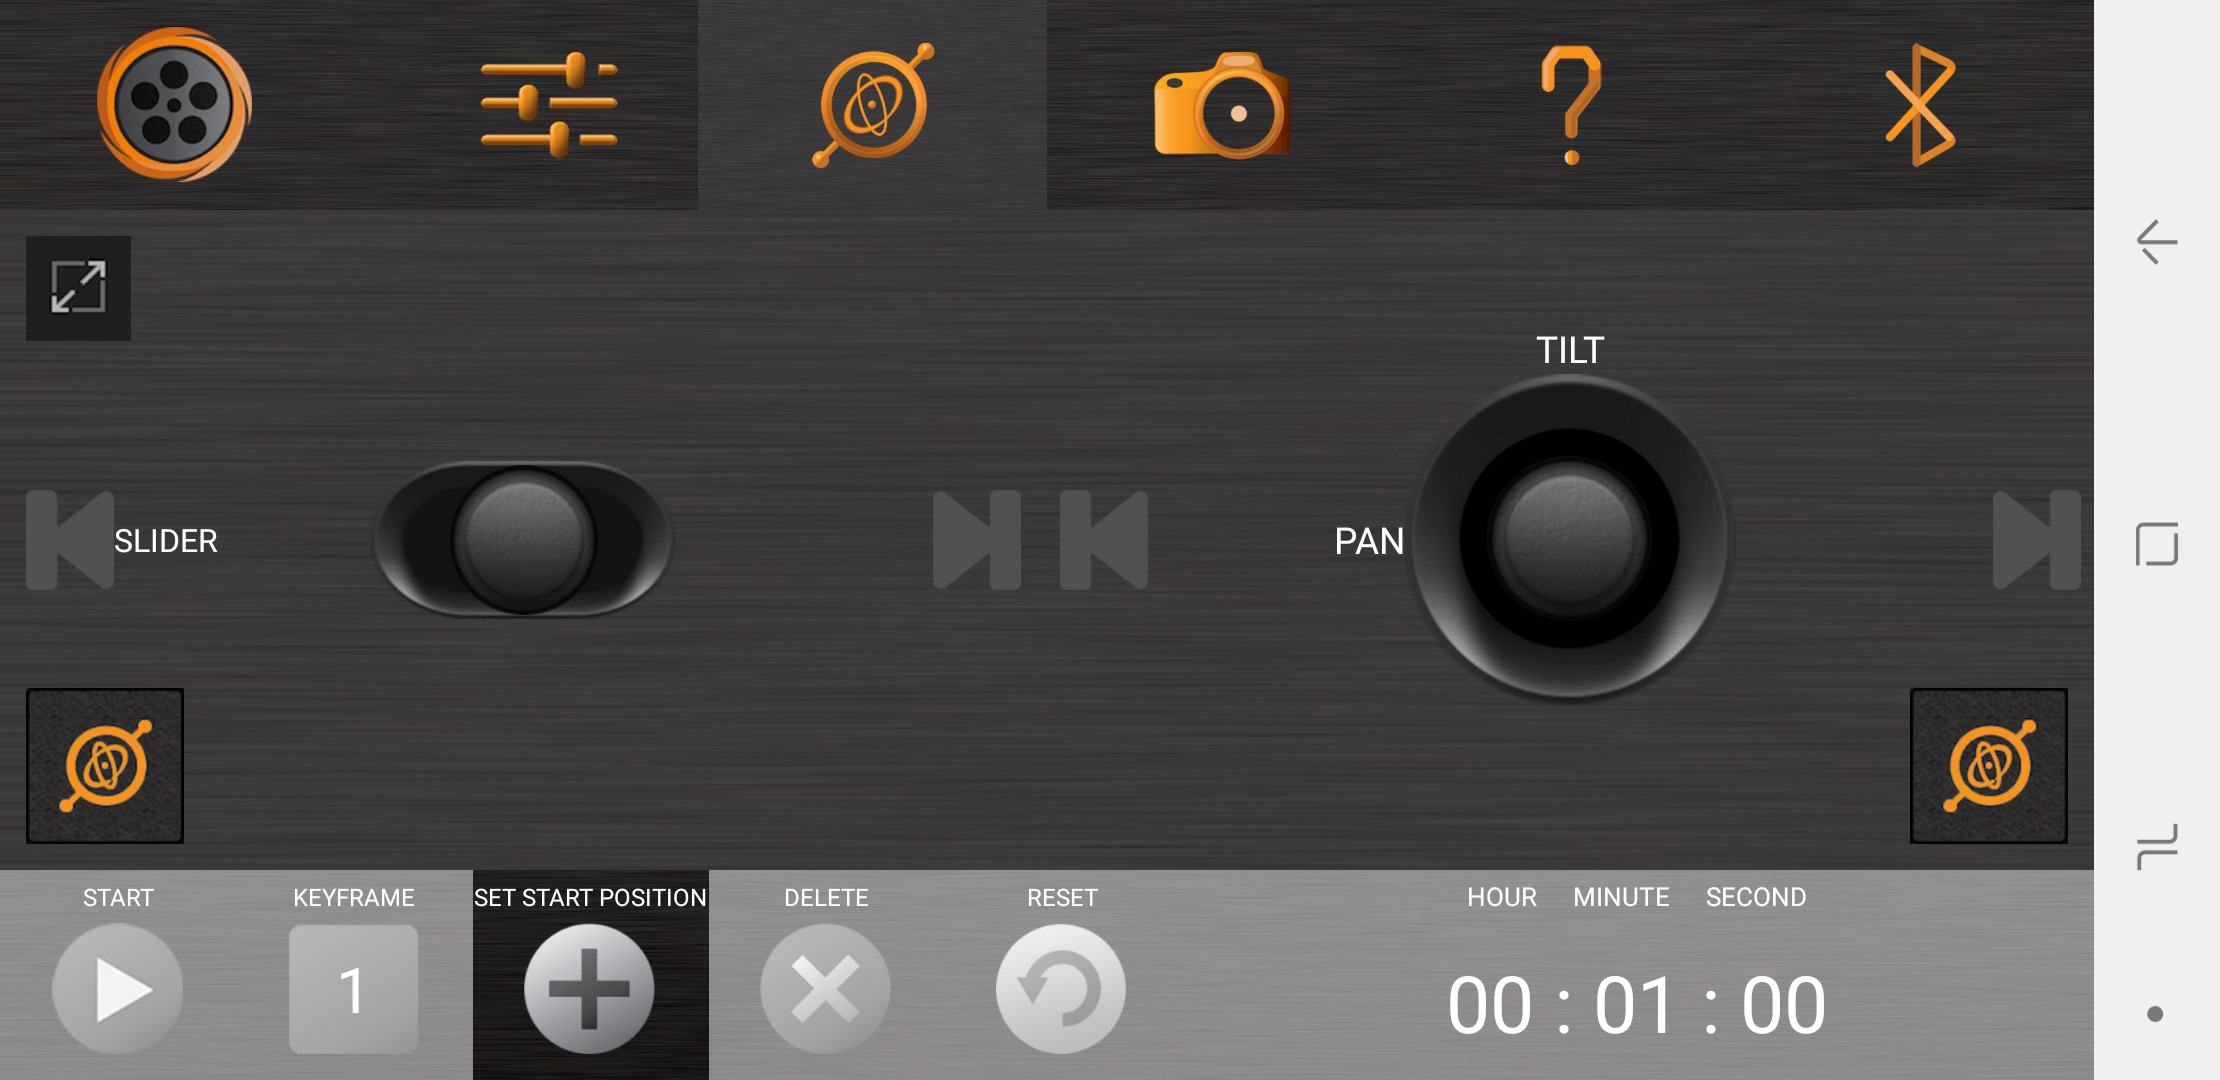 Cinetics Lynx App Slider Controls